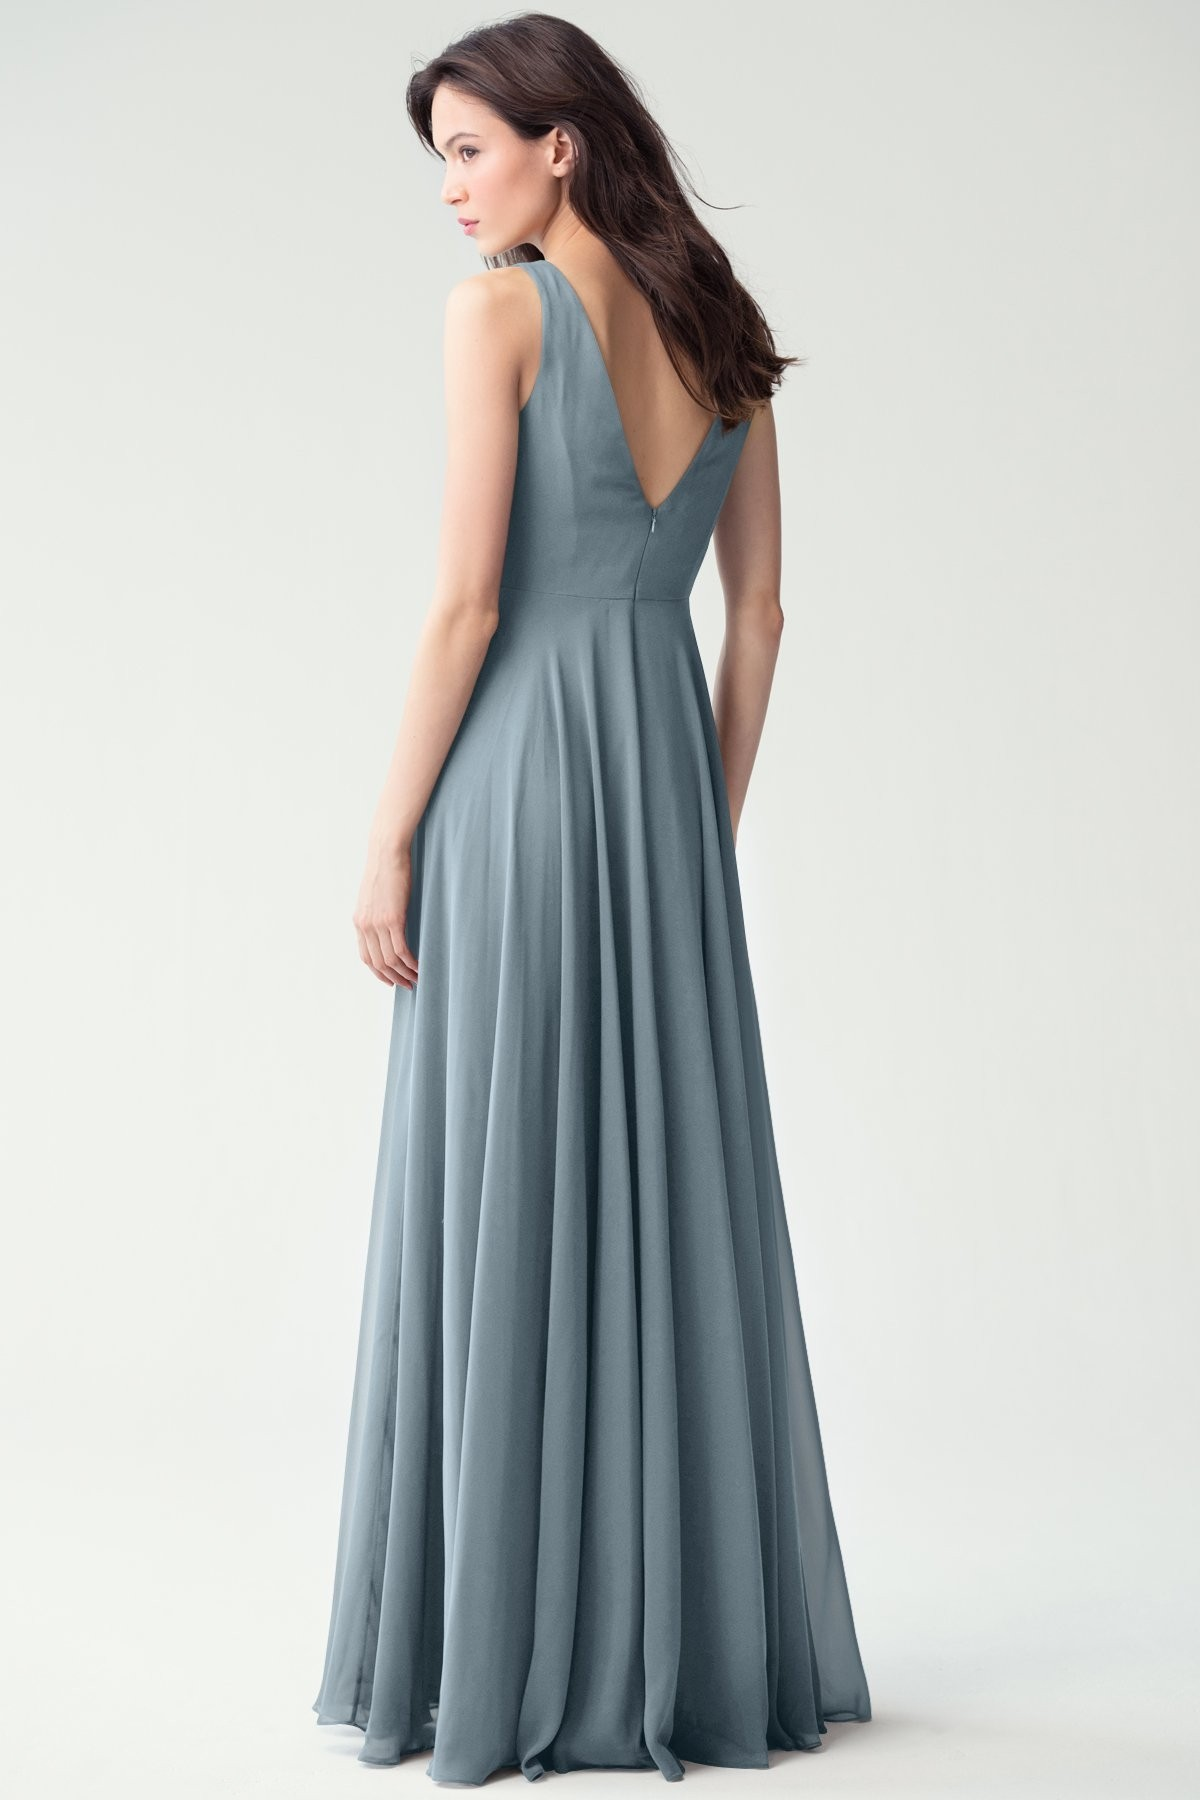 Liana Bridesmaids Dress by Jenny Yoo - Mayan Blue